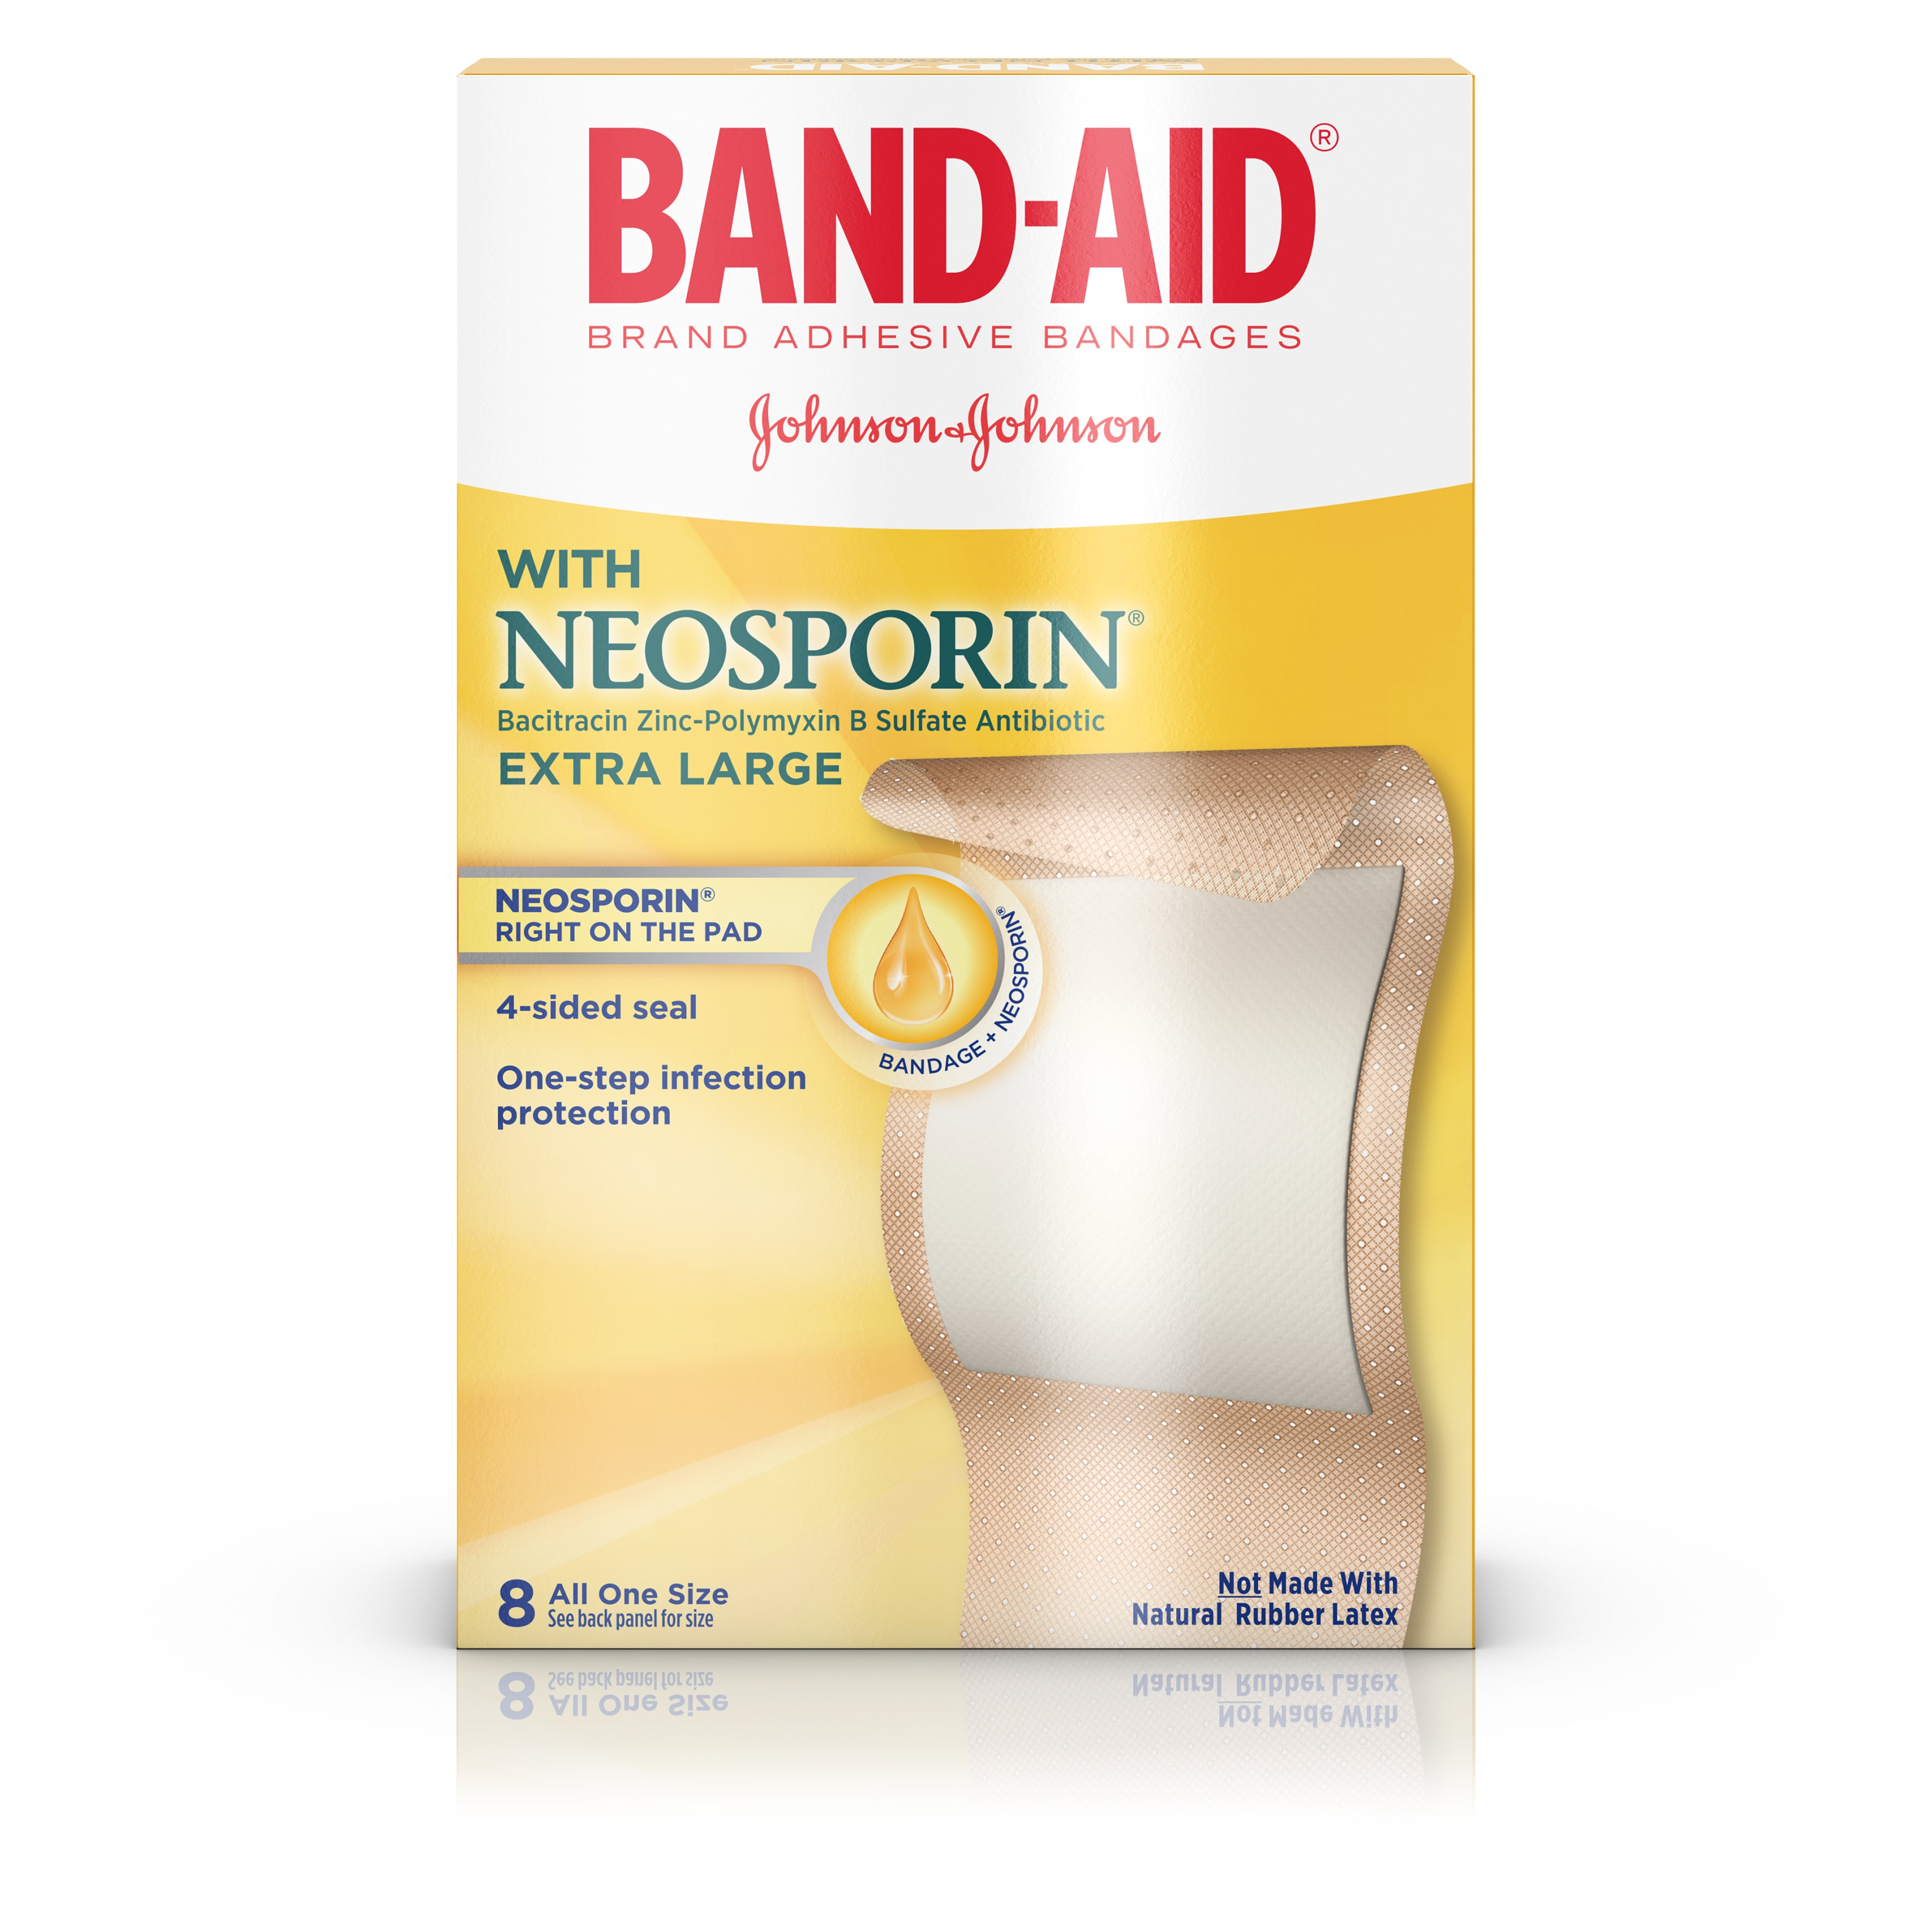 (2 pack) Band-Aid Brand Bandages with Neosporin Antibiotic, Extra Large, 8 ct